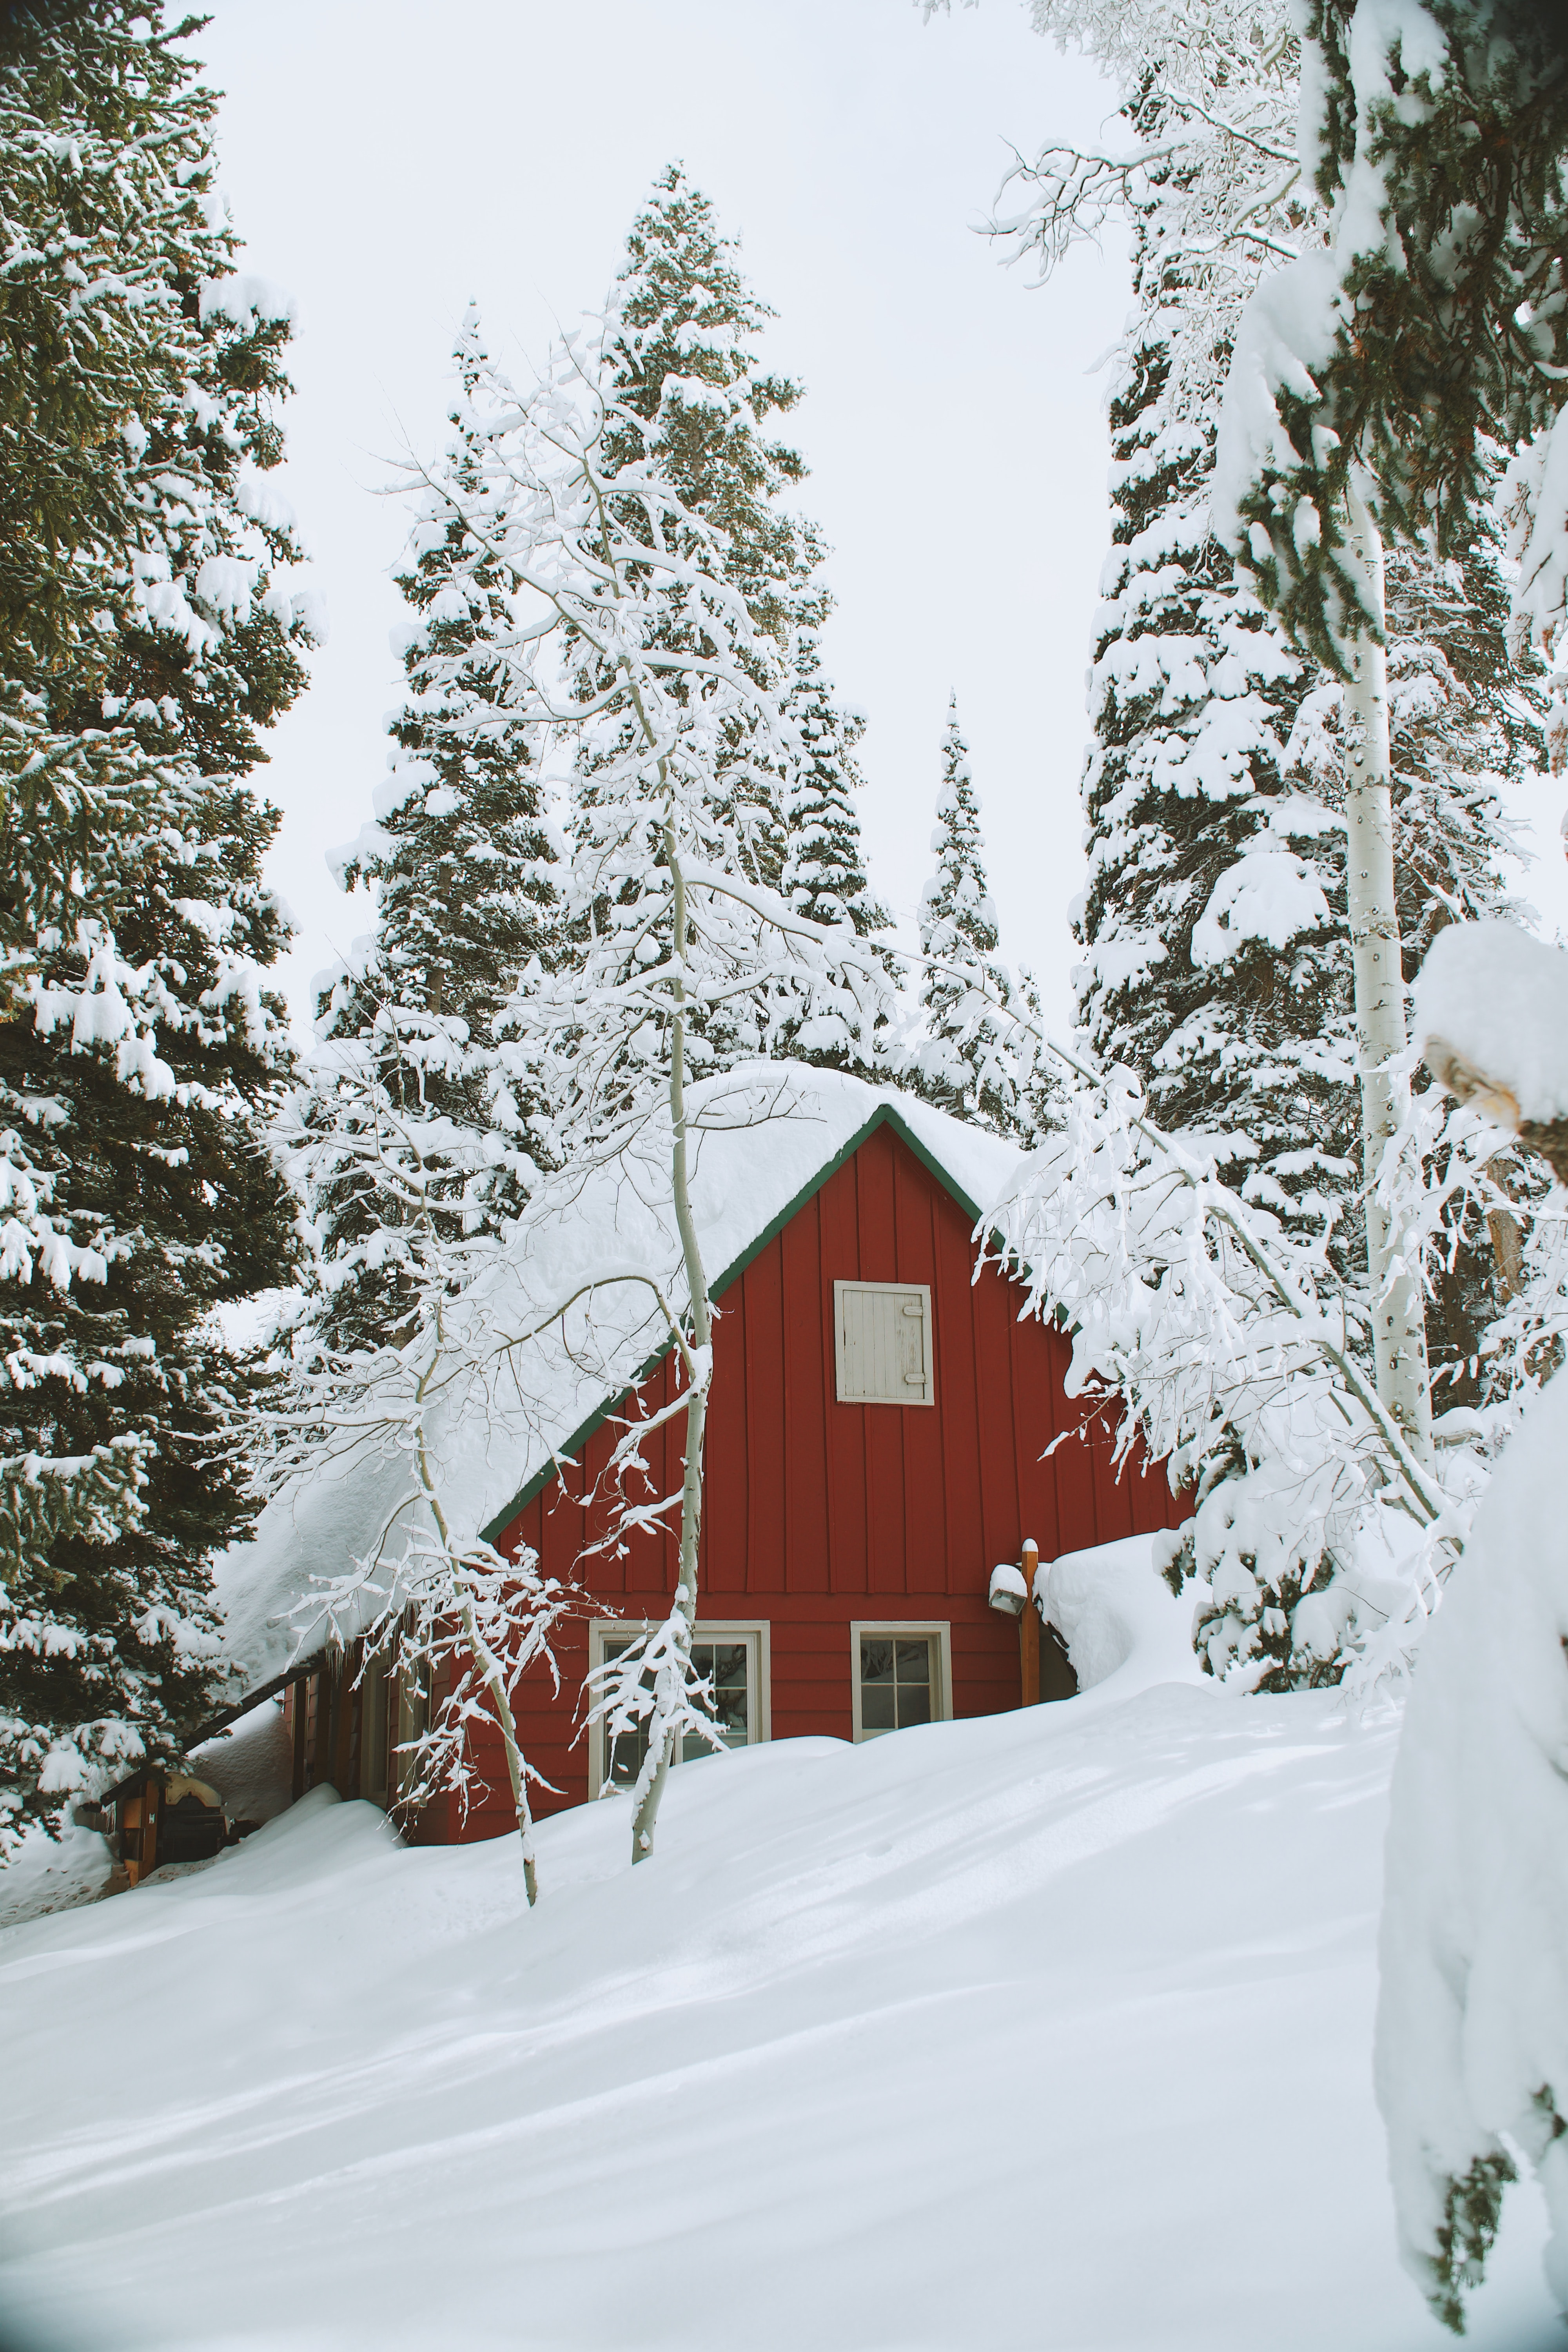 A snow covered house shaped as a trial on a winter hill in Solitude Nordic Center in Utah